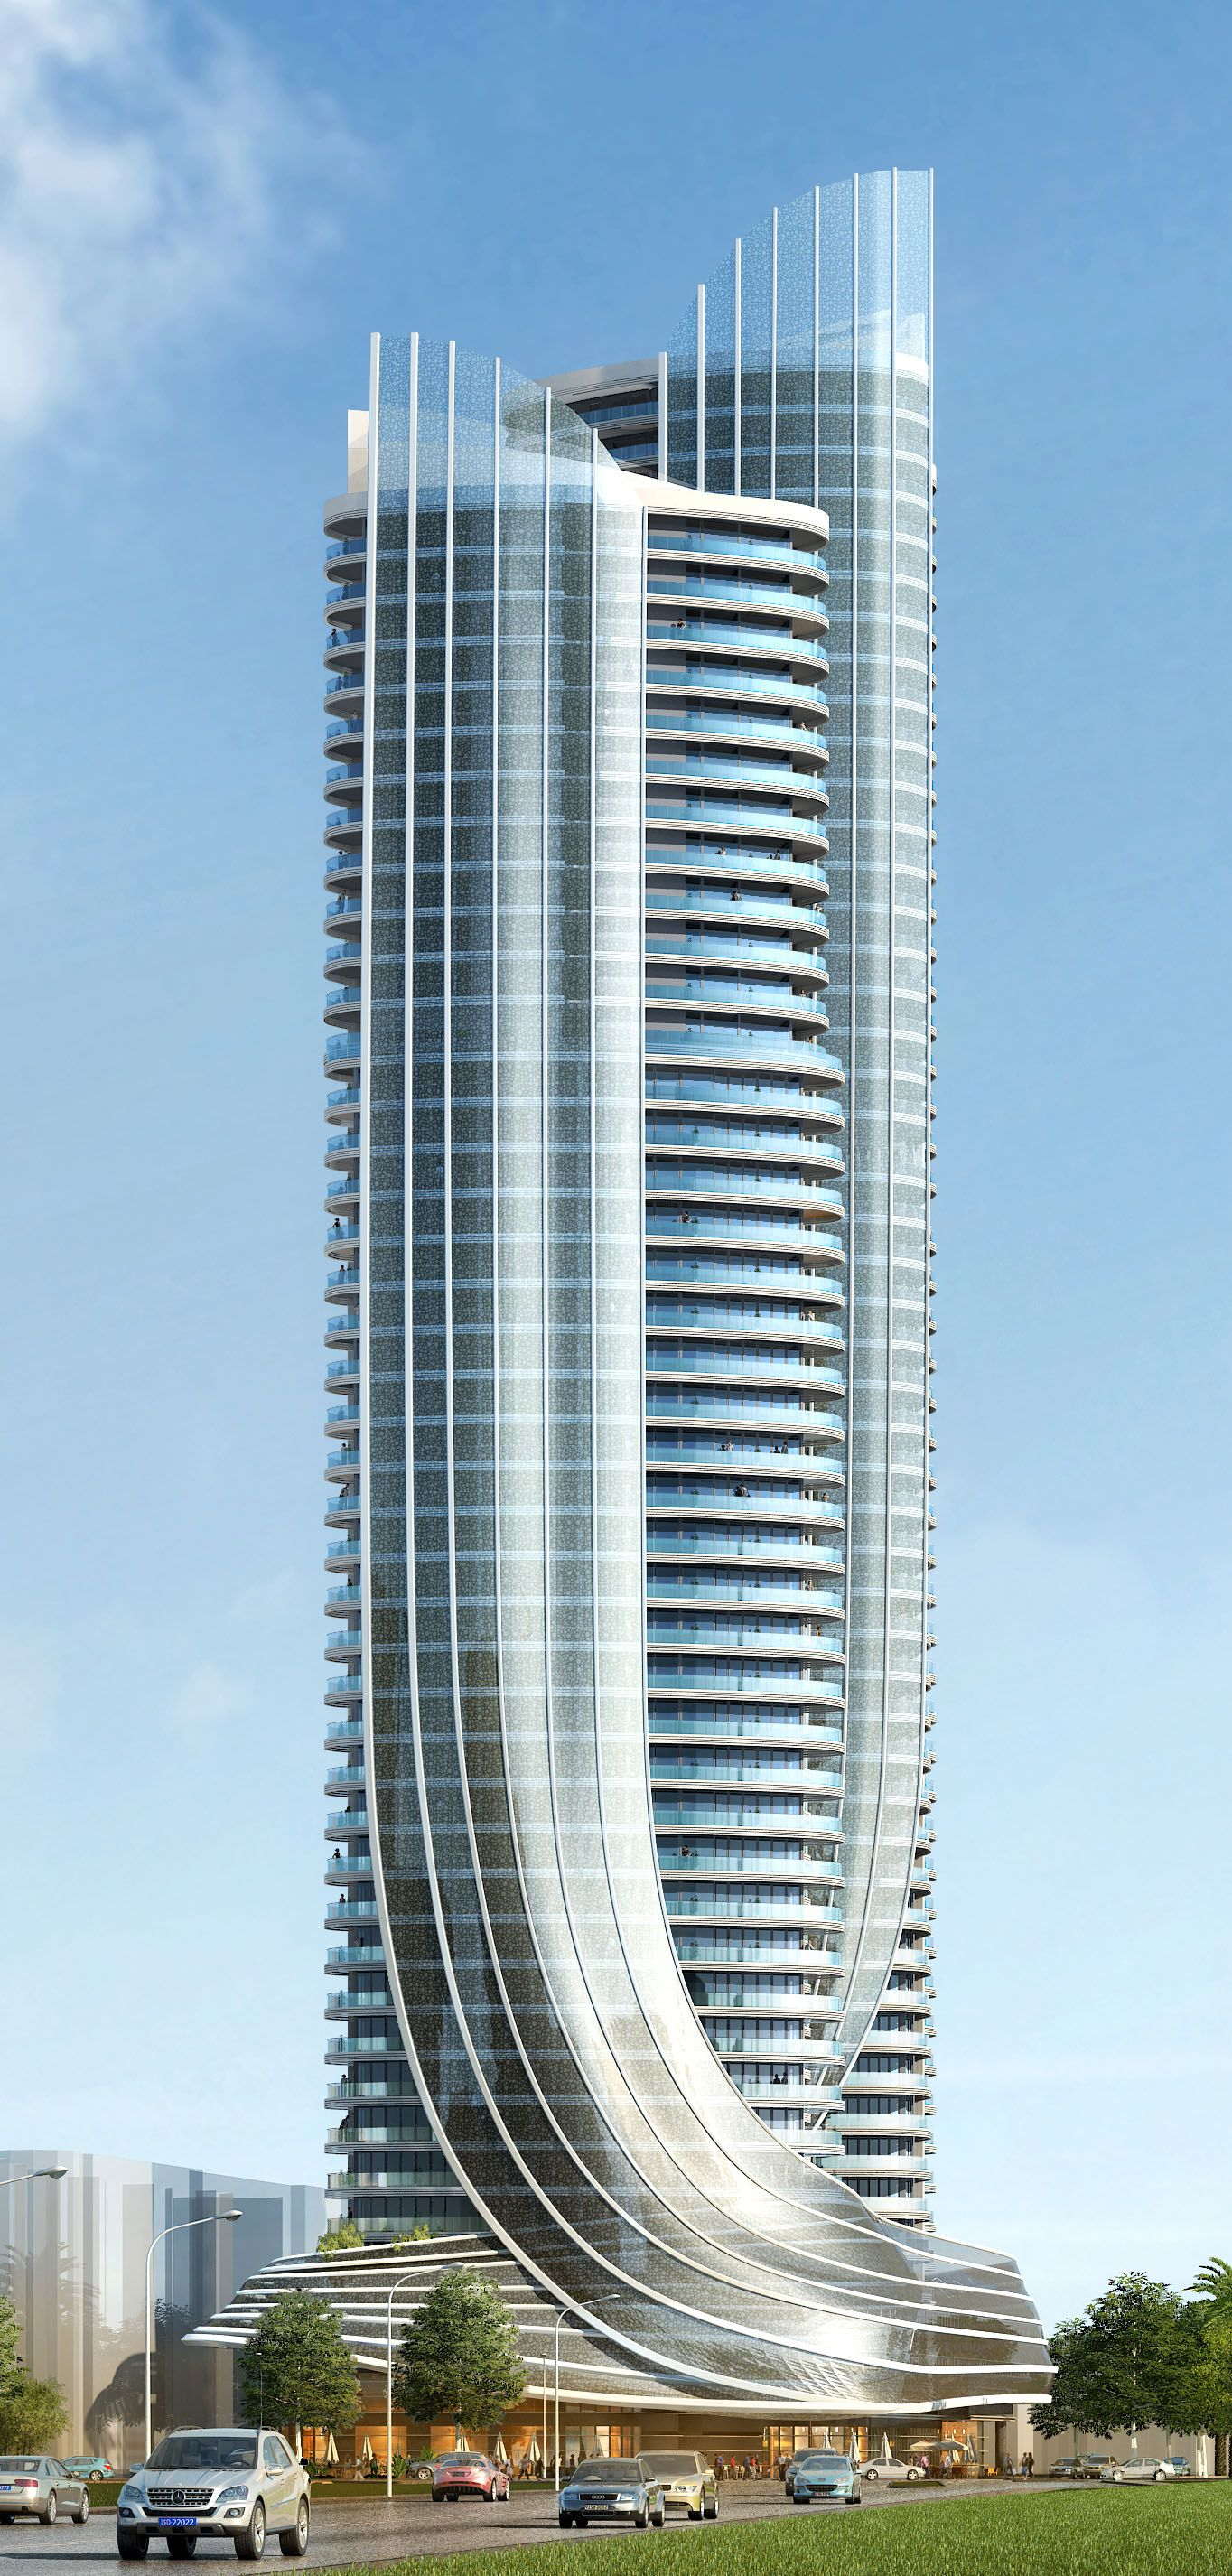 Elegance Two Towers 43 And 50 Storeys Create A Landmark Building Along The Busy Gold Coast Highway QLD Australia Featuring Sculptural Wrap Around